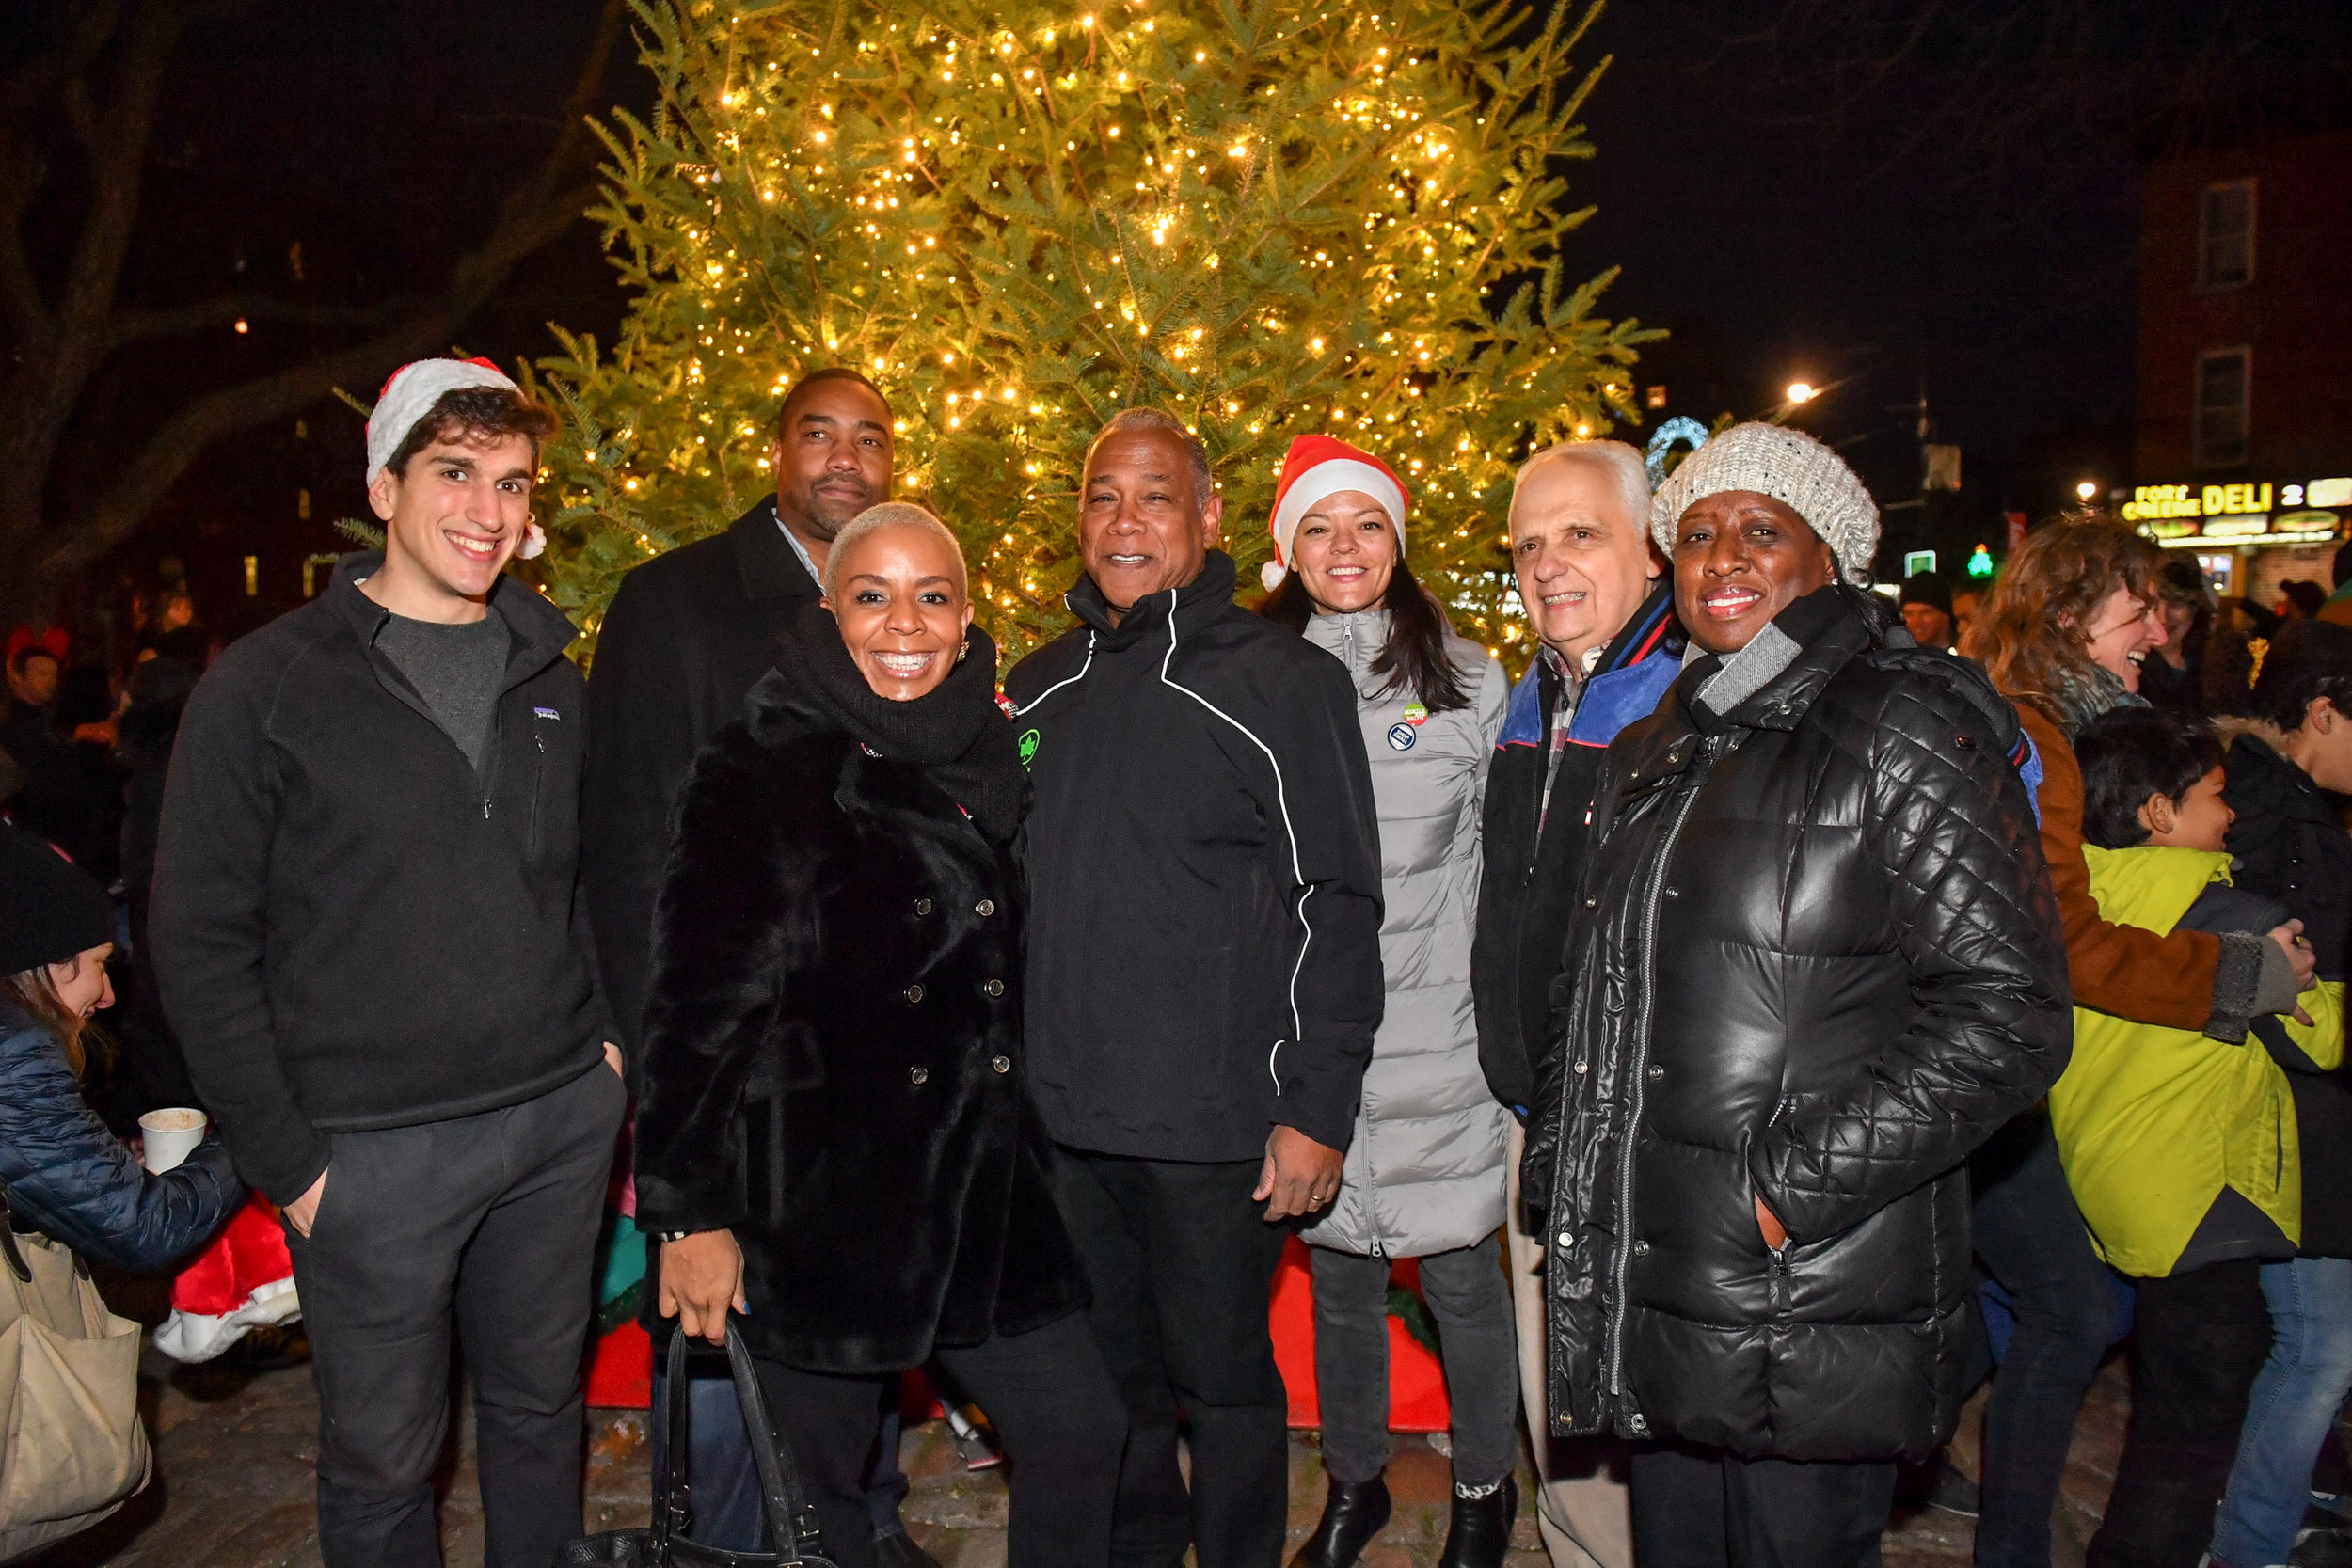 left to right: Julian Macrone, FGPC; Kevin Shirley, Apple Bank; Council Member Laurie Cumbo;Parks Commissioner Mitchell Silver;Meredith Phillips Almeida, MABP; Assemblyman Joseph Lentol; and Denise Peterson, Brooklyn DA office.photo credit: Daniel Avila, NYC Parks